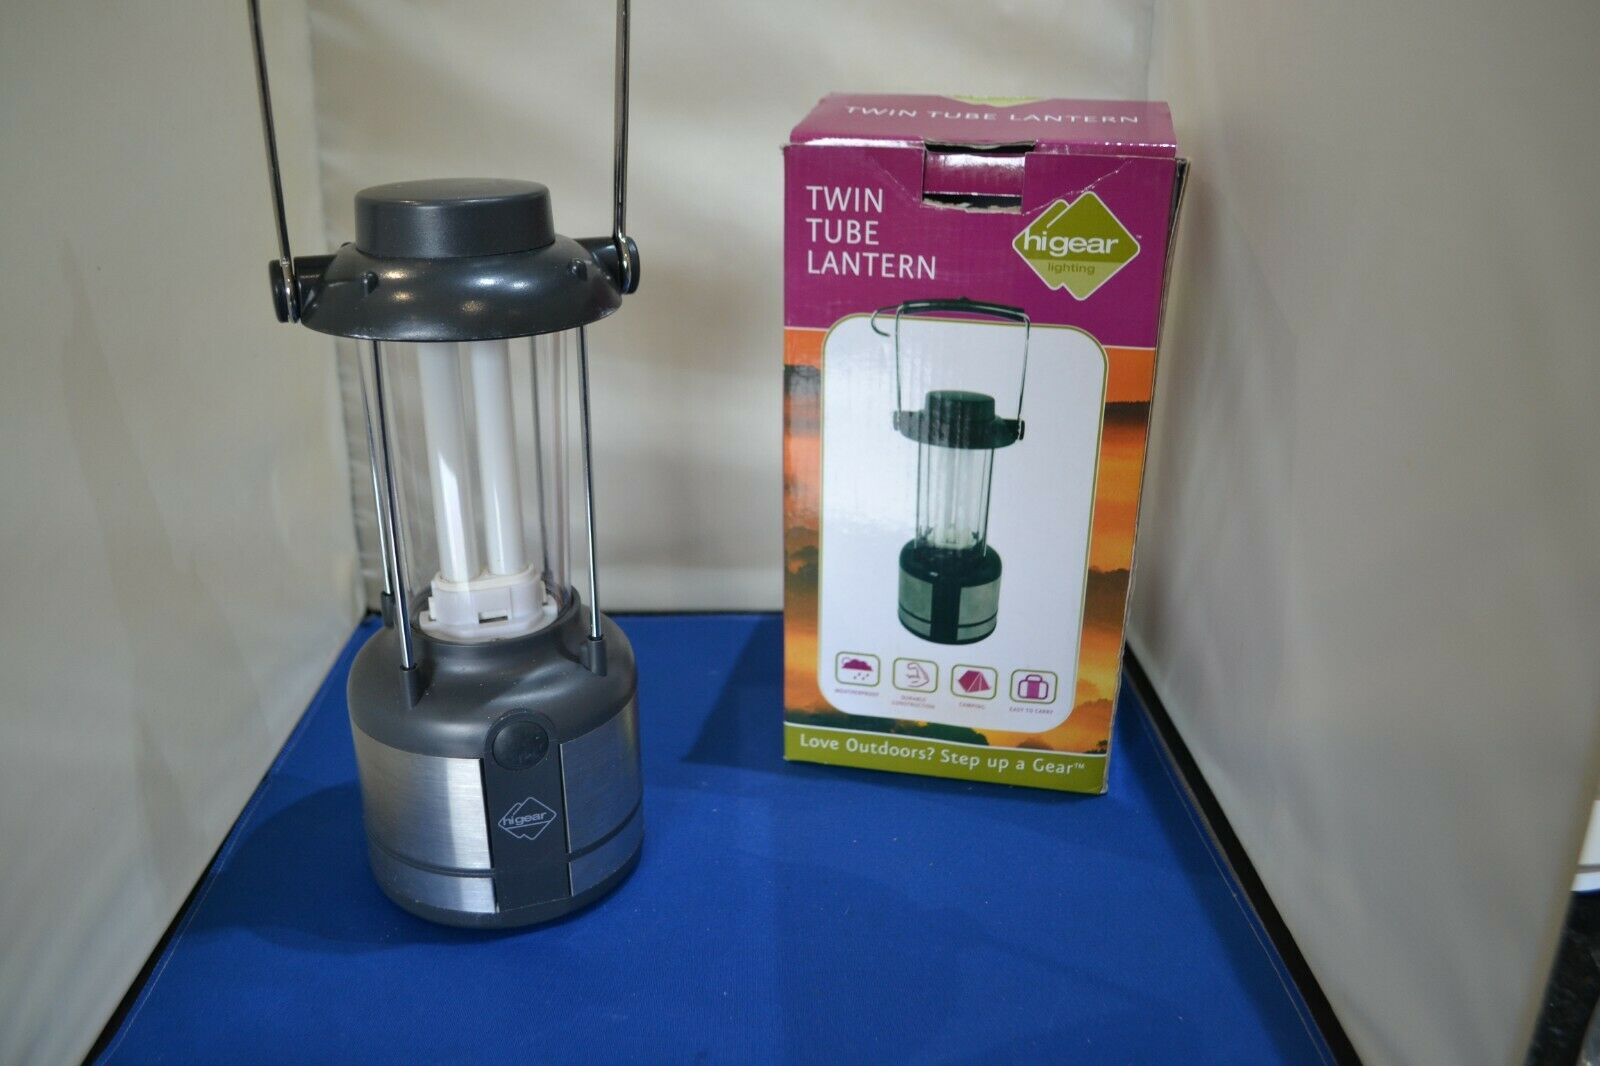 Higear Twin Tube Camping lantern (4 x D cell) Opened but never used.